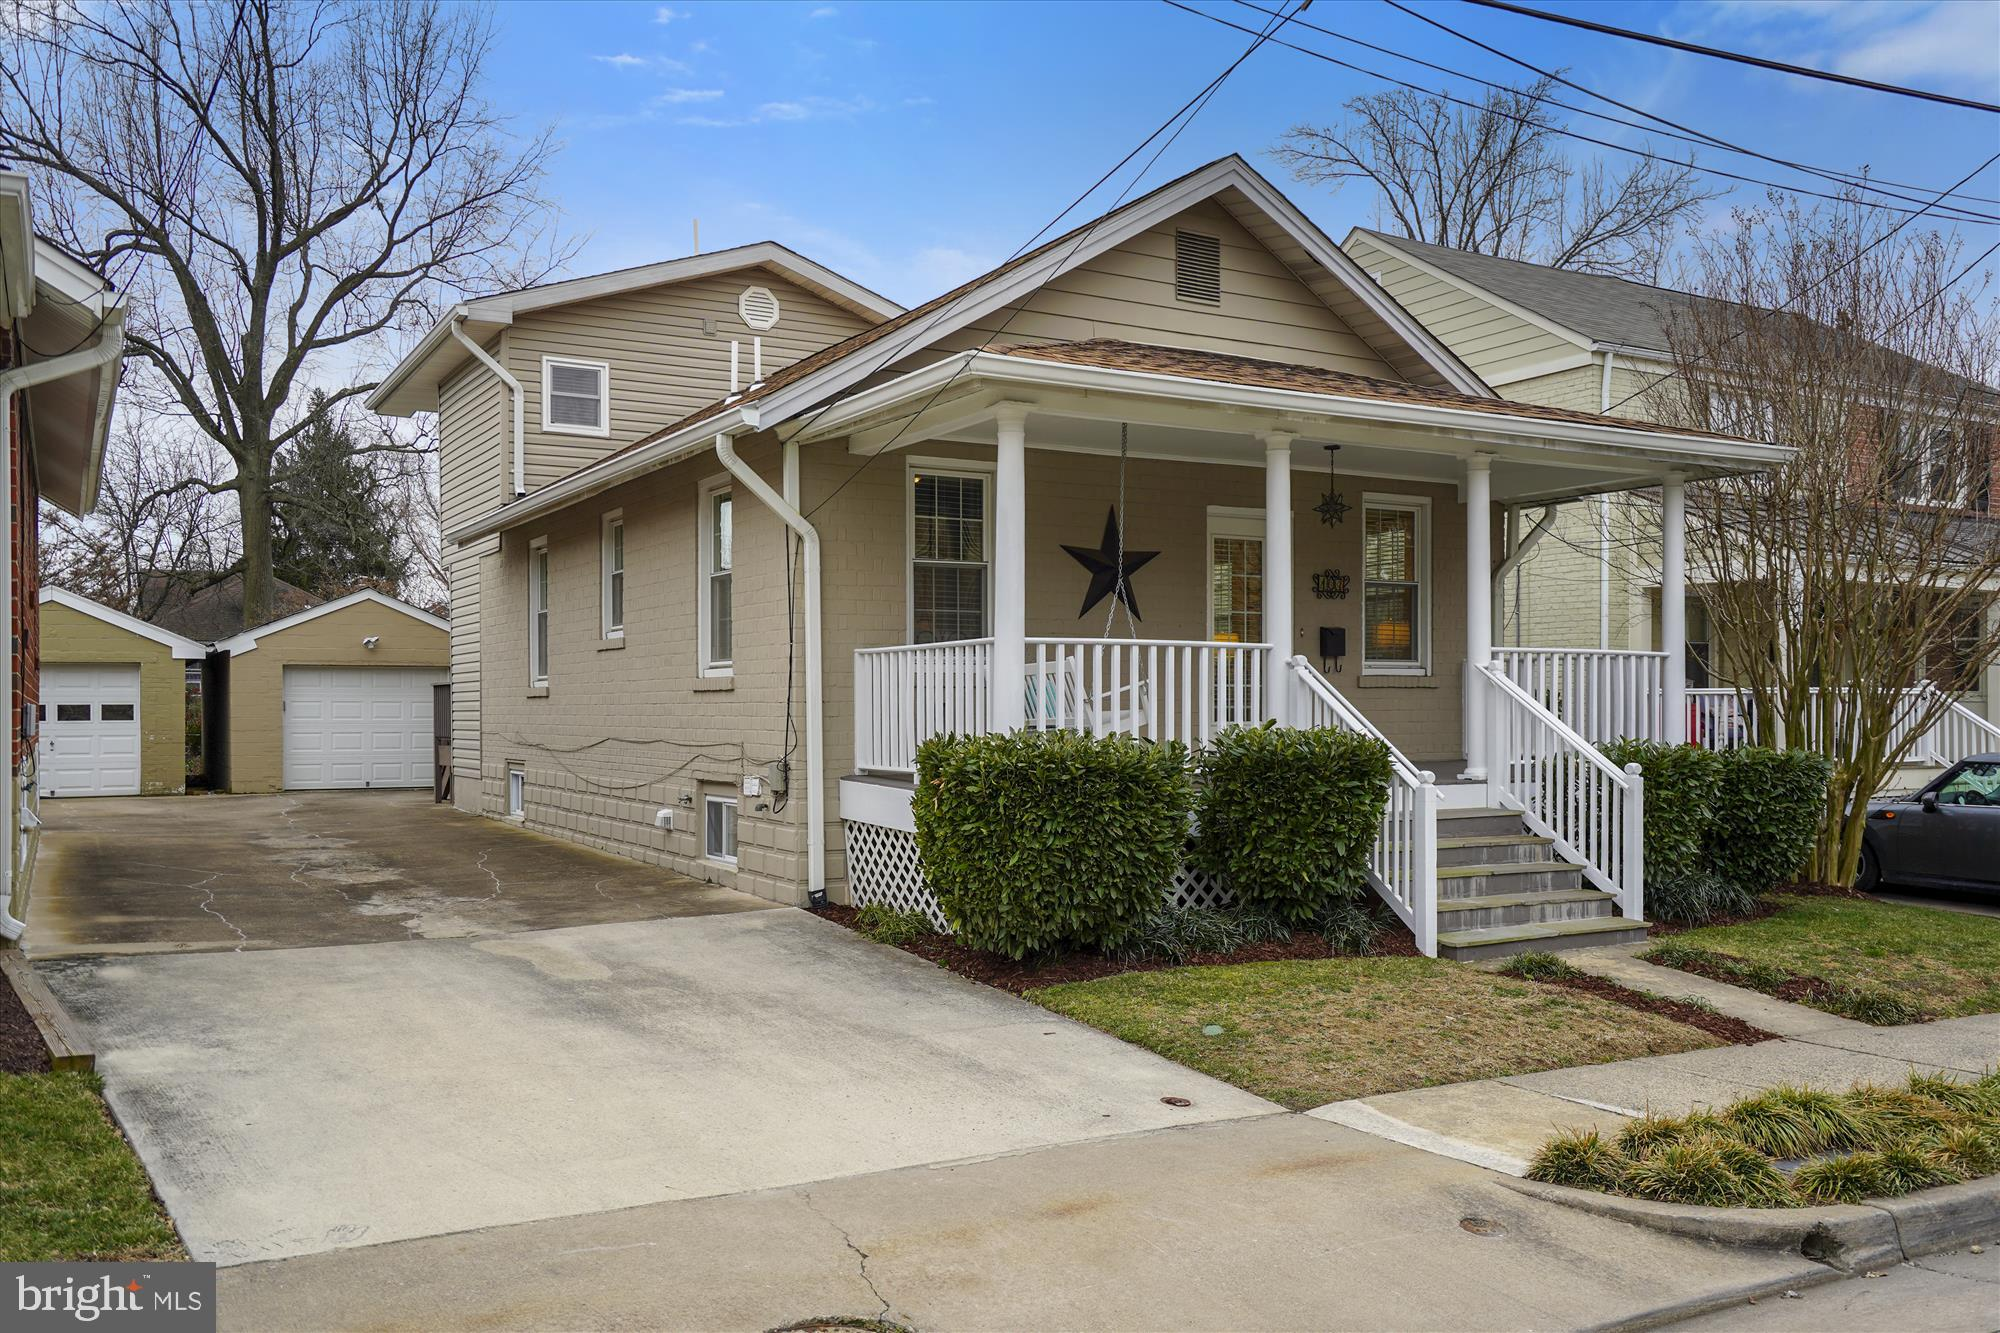 Located 1 block off The Avenue in the heart of Del Ray, this beautifully remodeled, sun-filled 3BR/3BA bungalow has a 2-story rear addition and a REAL 1-car garage. Spacious Living Room with wall of windows, plus open Dining Room and Kitchen with French door to deck. The main level also 2 bedrooms and a full bath. On the upper level is a king-size MBR suite with walk-in closet and MBA. The finished lower level has a large, bright Rec Room, full bath, laundry, and utility room. Gleaming hardwoods, built-ins, recessed lighting, and amazing storage in the HUGE walk-in attic. Enjoy spring on the front porch swing and in the landscaped backyard with patio and deck. A gem that's a true 10!